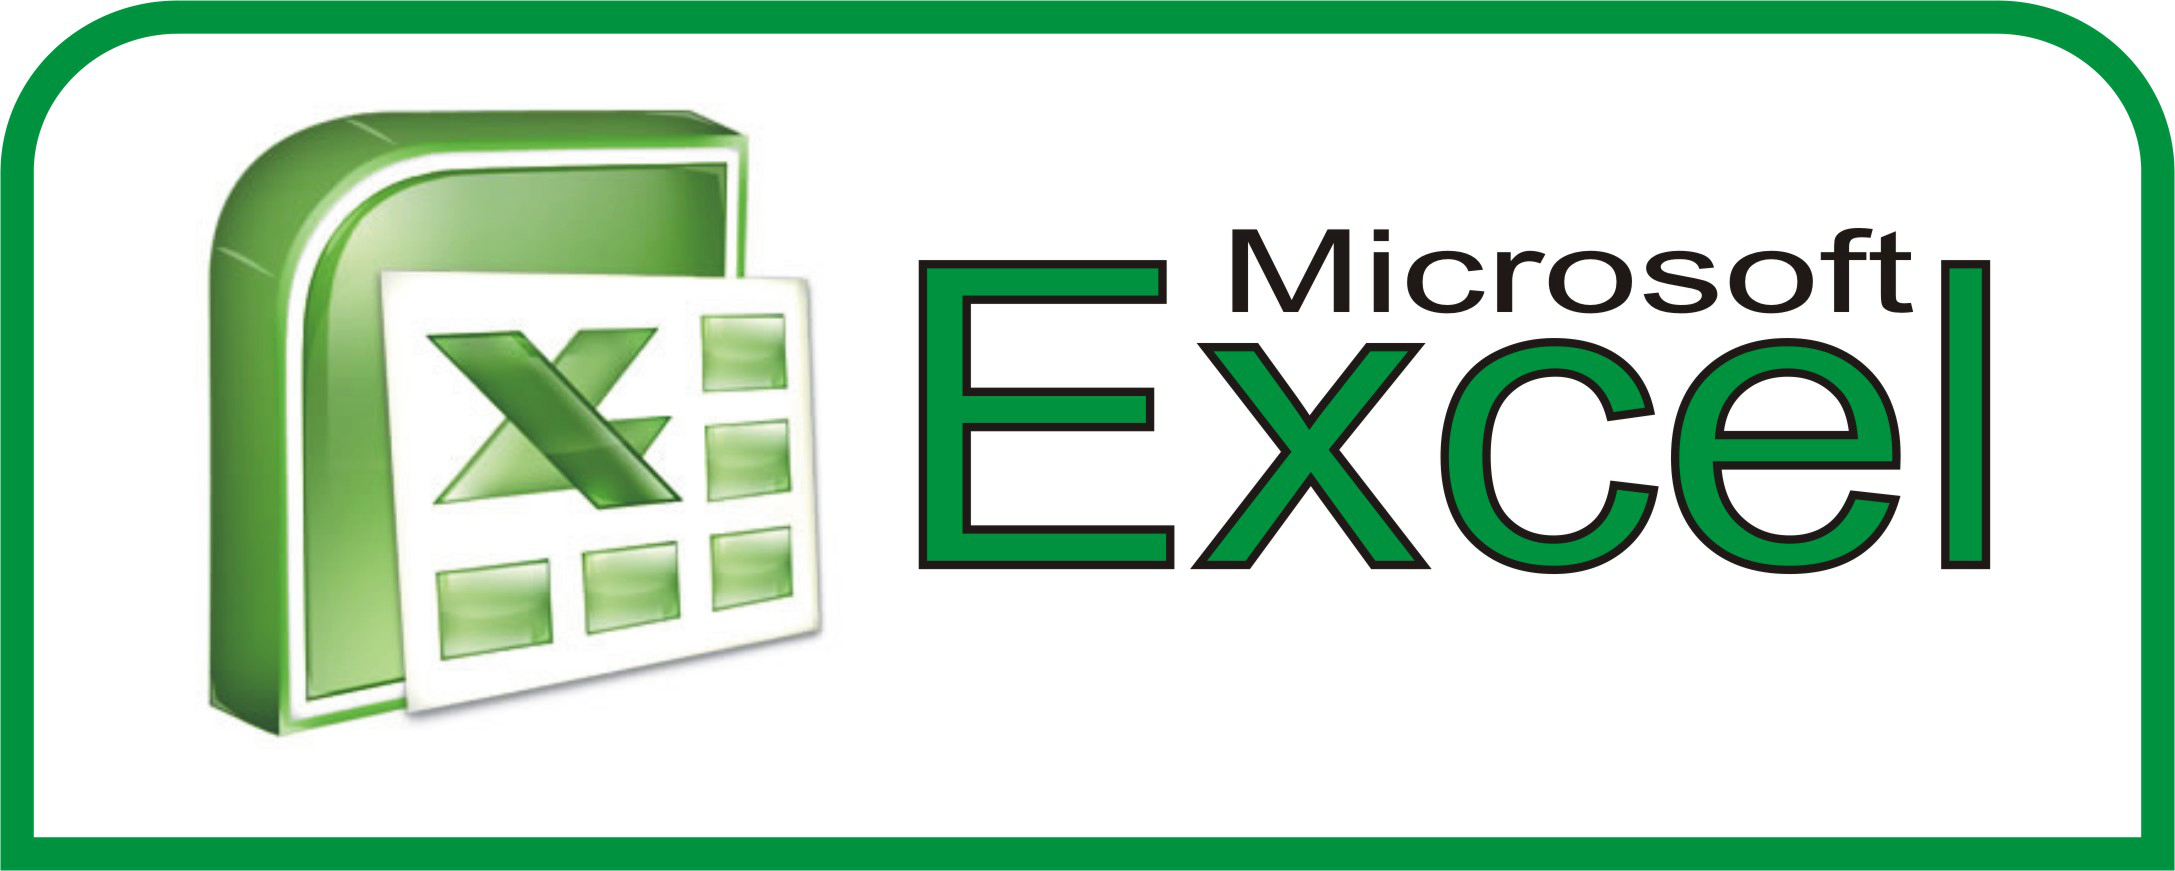 Ediblewildsus  Unique  Excel Shortcuts You Probably Didnt Know About  Techdissected With Interesting Advanced Excel Class Besides Excel Convert Text To Formula Furthermore Excel Find Range With Divine Family Tree In Excel Also Day Calculator Excel In Addition Statistical Process Control Excel And Monte Carlo Simulation Excel Example As Well As Excel Moving Additionally Nfl Player Stats Excel From Techdissectedcom With Ediblewildsus  Interesting  Excel Shortcuts You Probably Didnt Know About  Techdissected With Divine Advanced Excel Class Besides Excel Convert Text To Formula Furthermore Excel Find Range And Unique Family Tree In Excel Also Day Calculator Excel In Addition Statistical Process Control Excel From Techdissectedcom